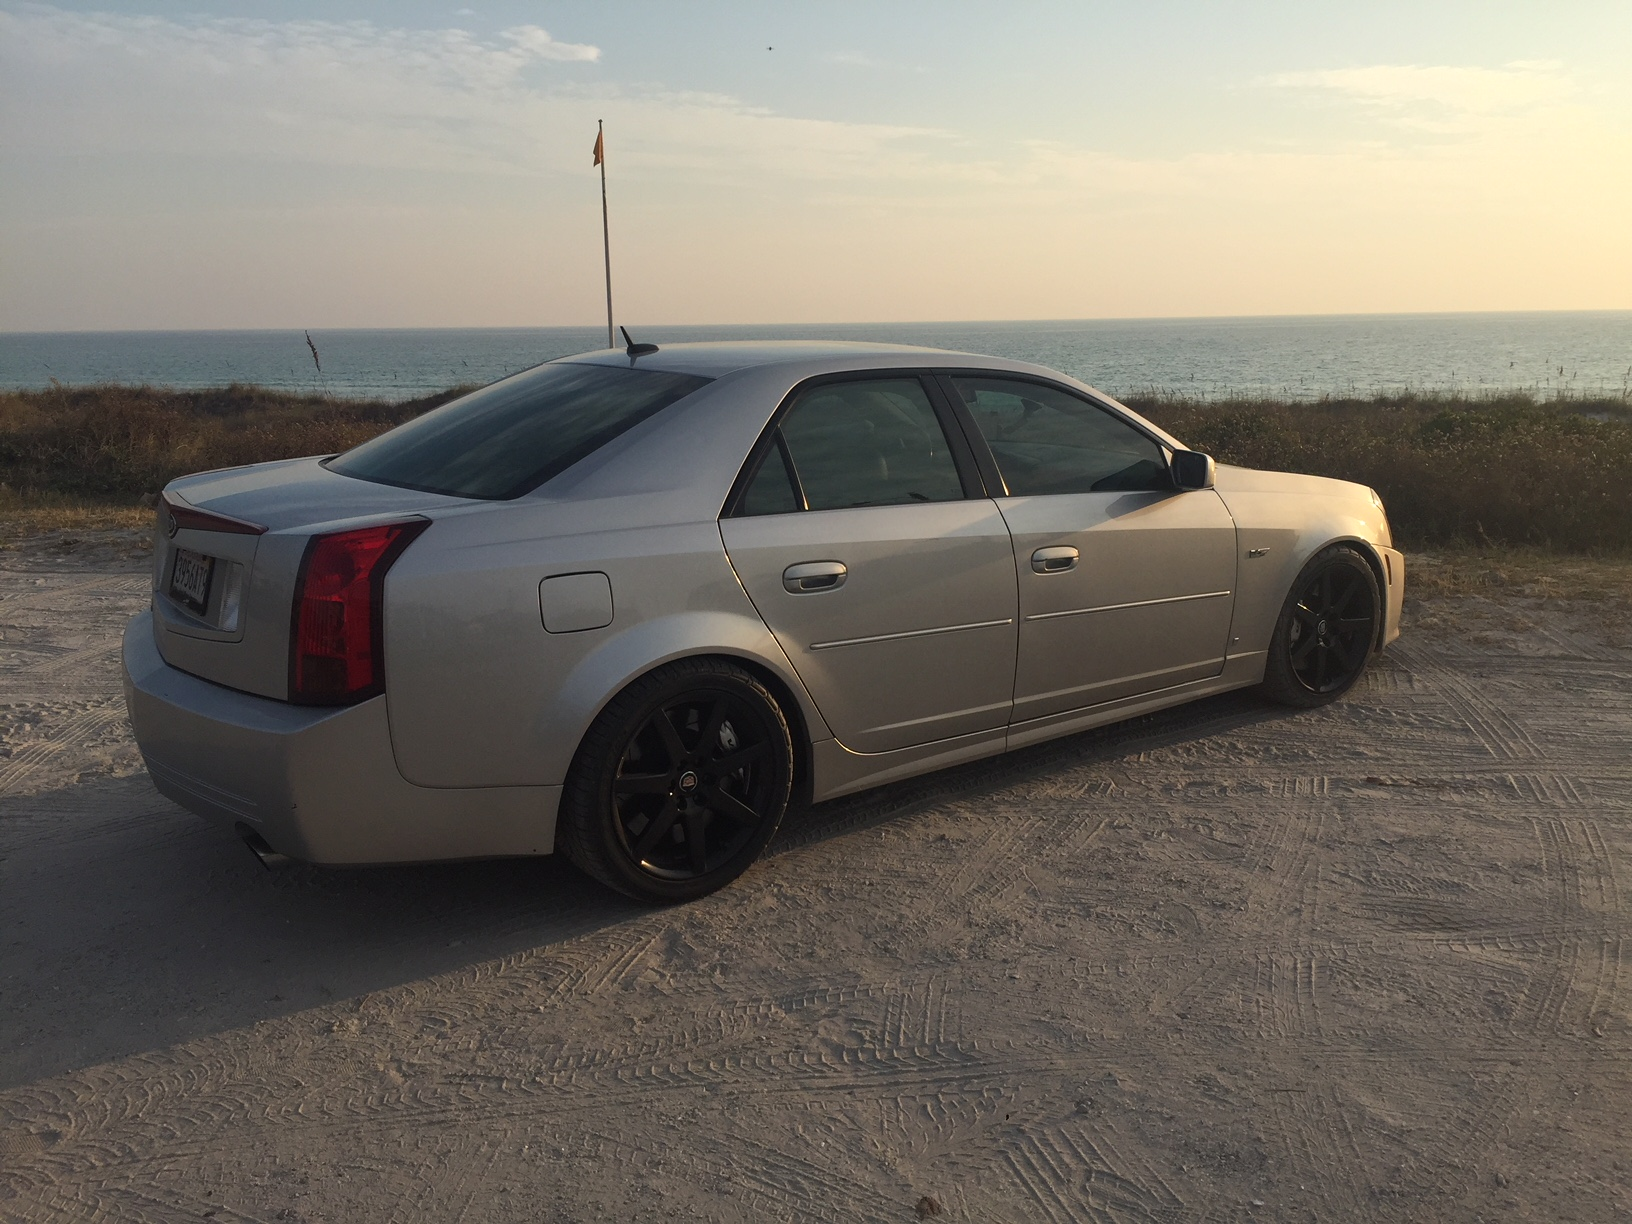 hight resolution of  2007 cadillac cts v 6 0l ls2 img 9248 1242 jpg